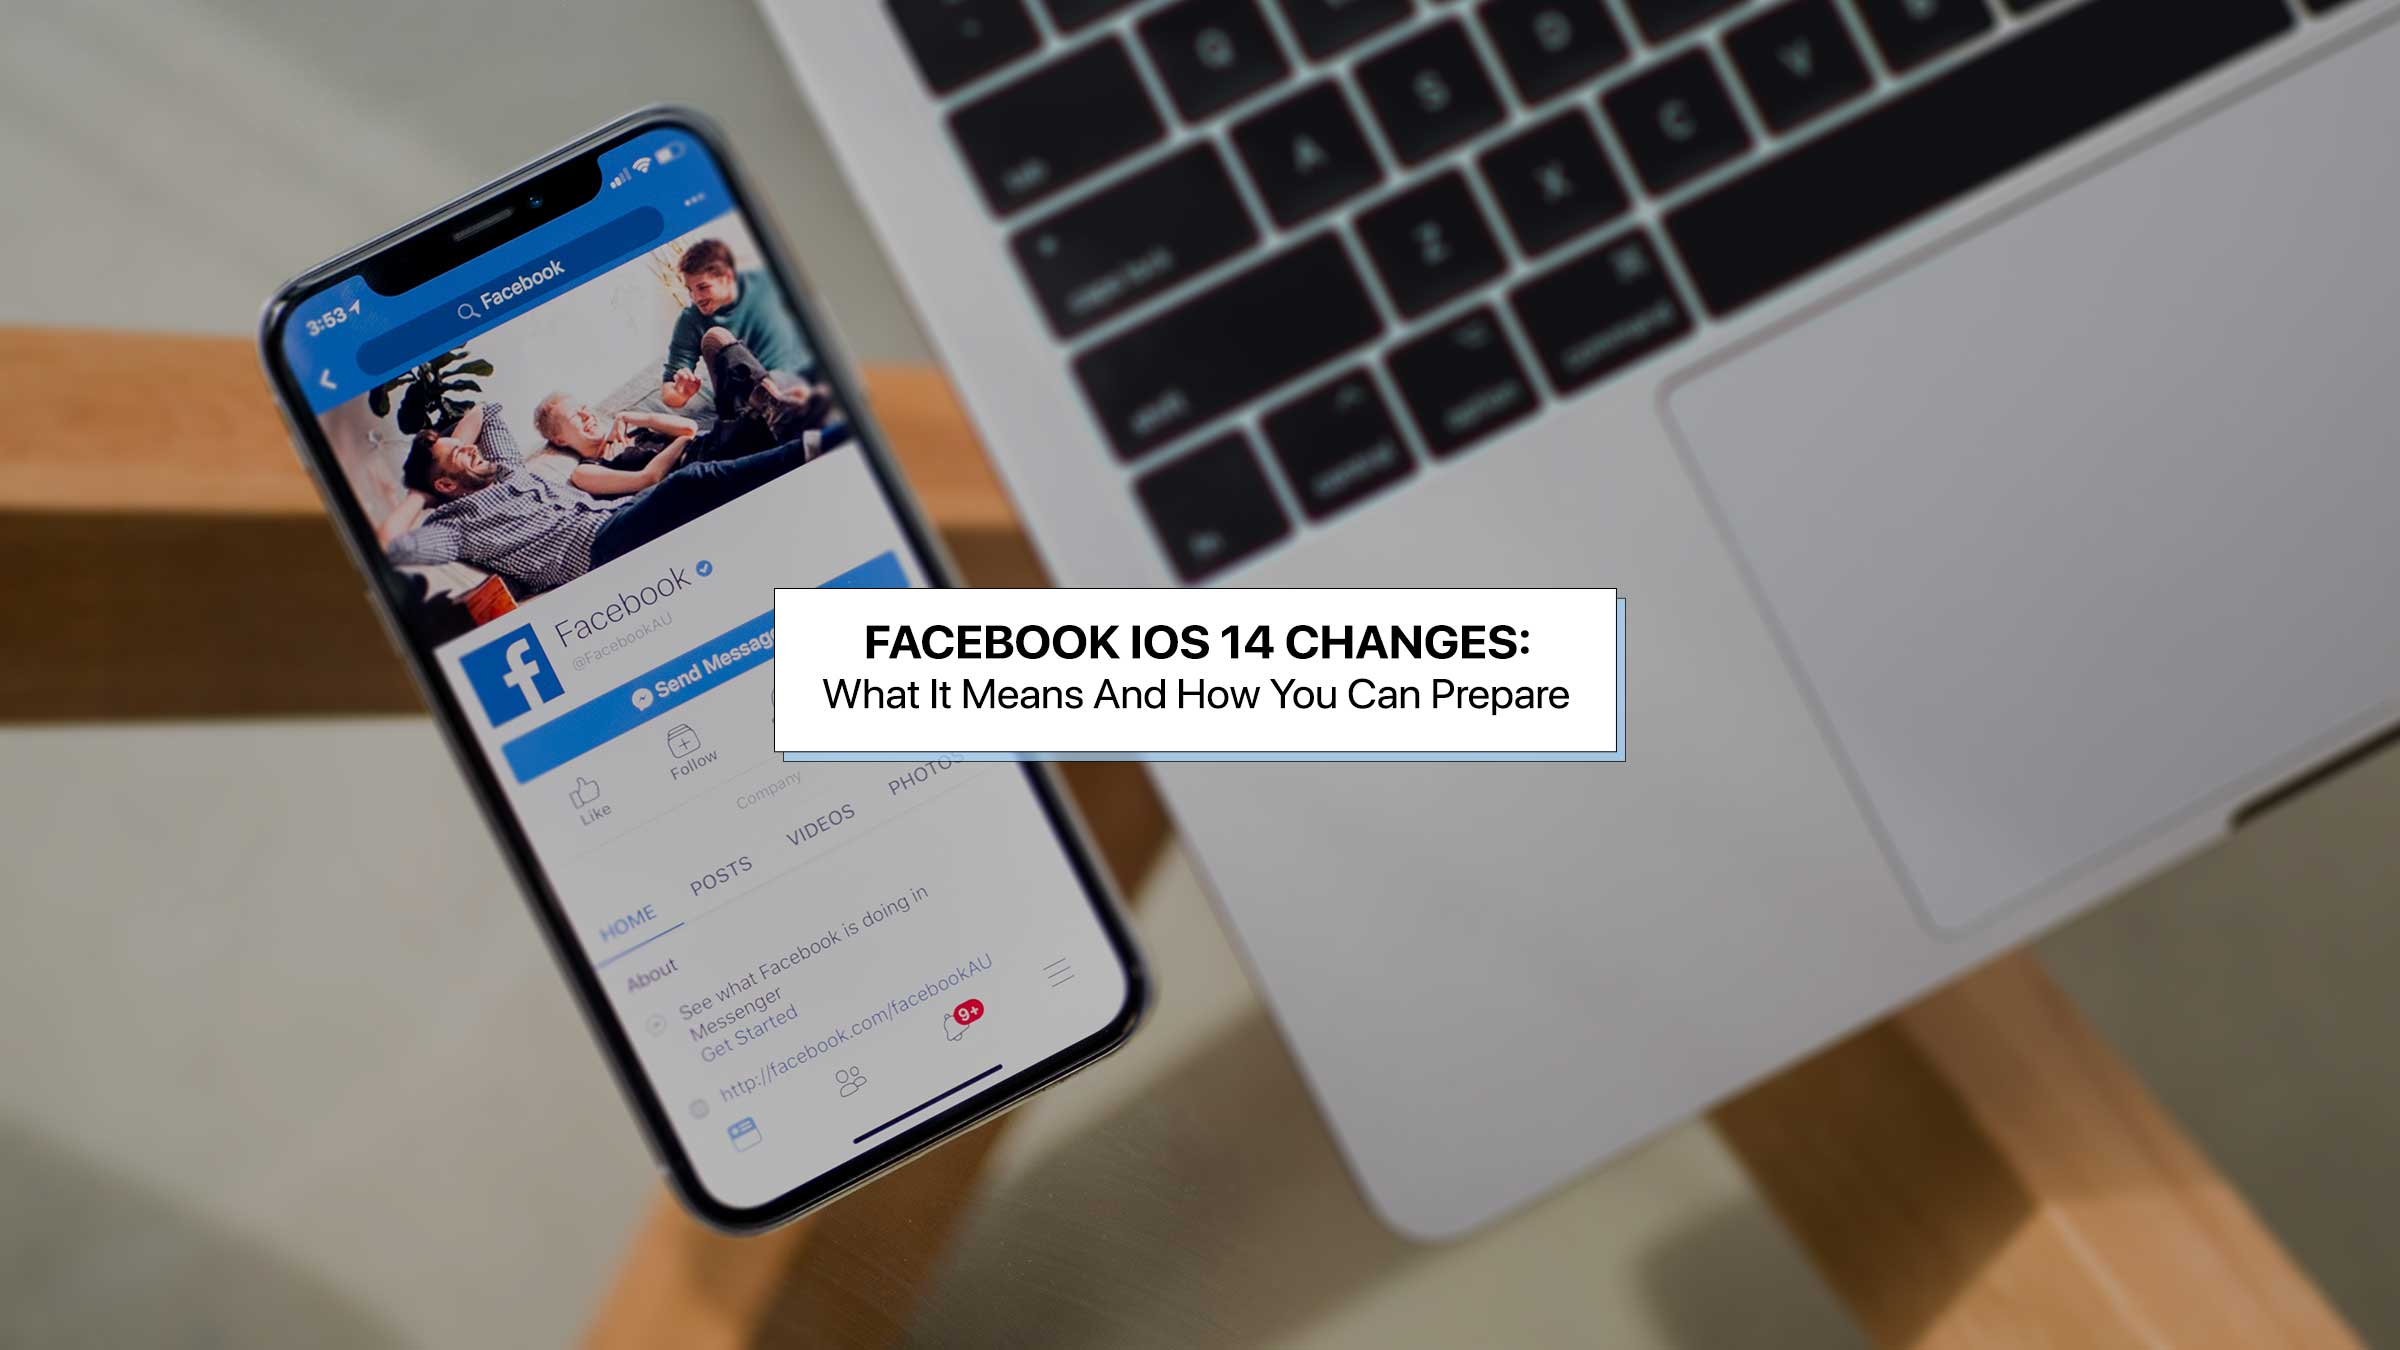 Facebook iOS 14 changes: What it means and how you can prepare